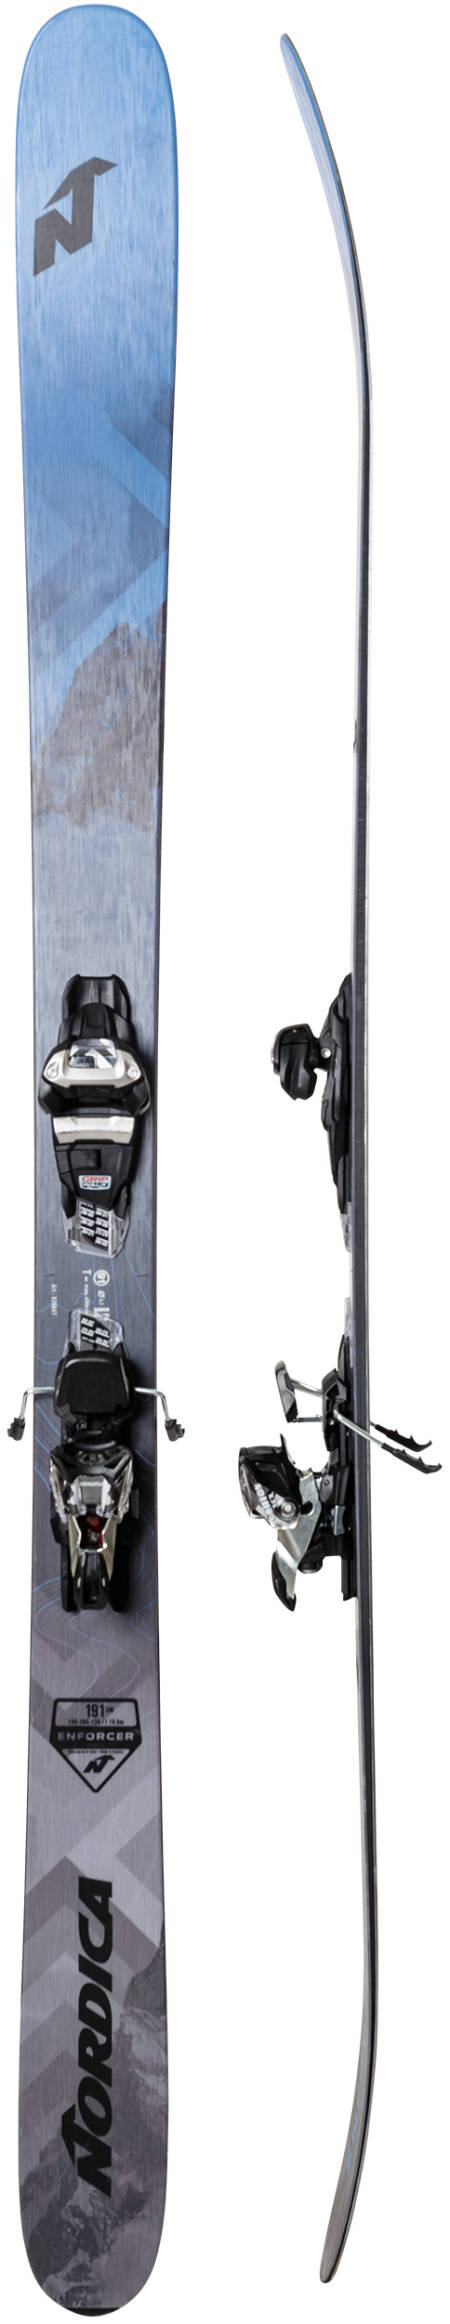 Test av Nordica Enforcer 104 2020